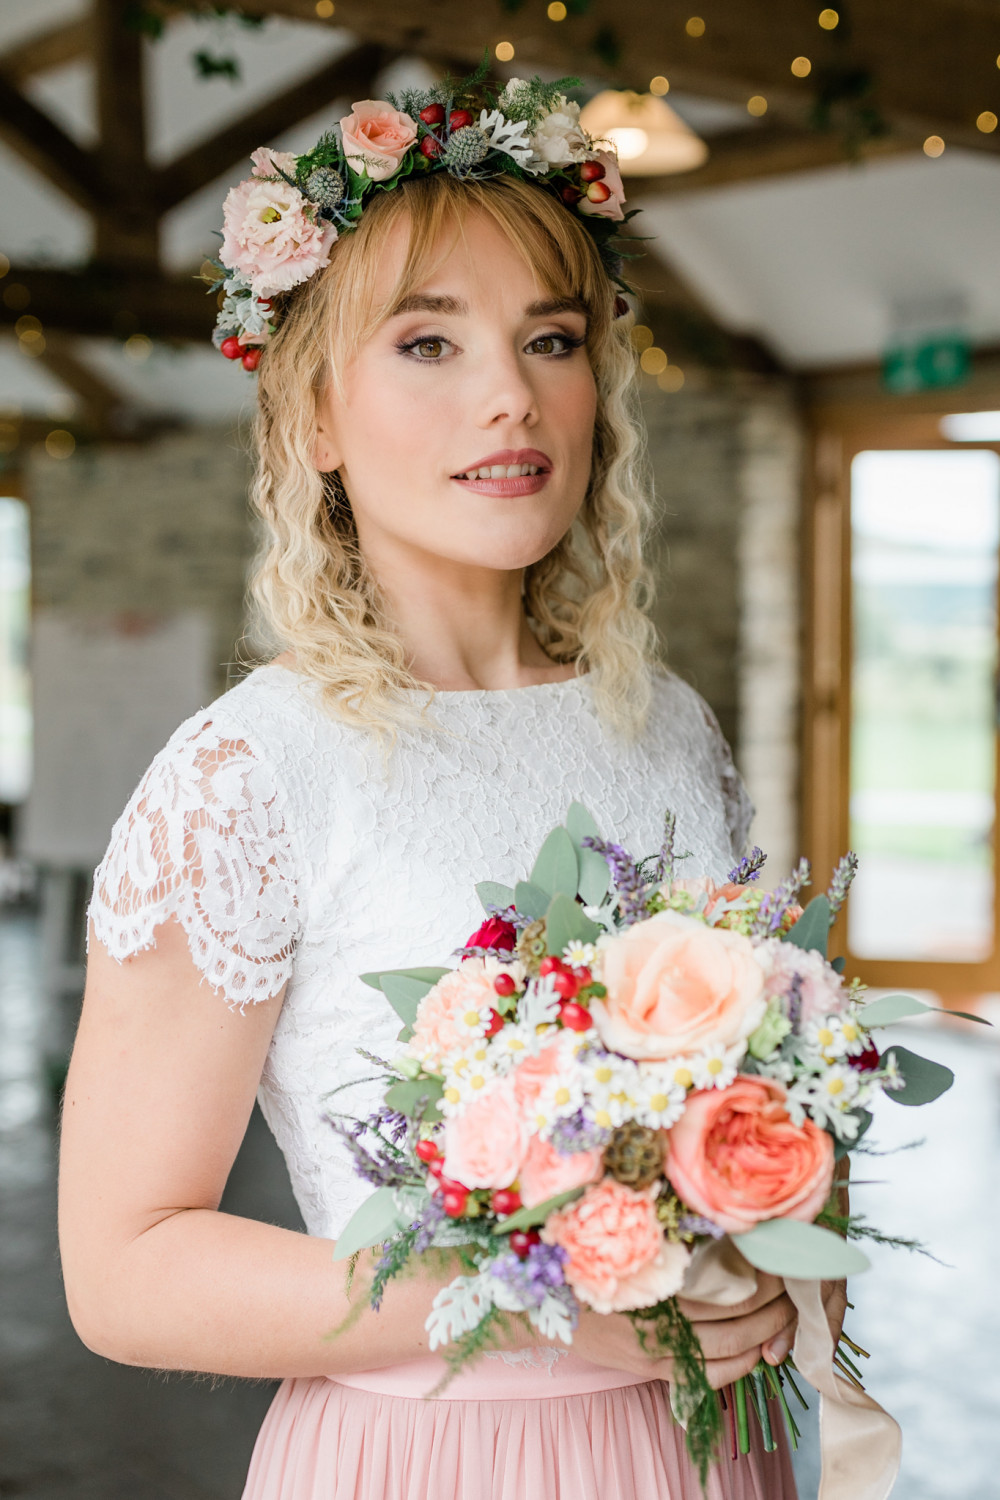 Styled Photoshoot   Inspiration - Down on the farm - Make Me Bridal Artist: SJM Beauty   Make-up Artist. Photography by: Becky Wright Photography. #bohemian #vintage #boho #flowercrown #bridalmakeup #glow #soft #relaxed